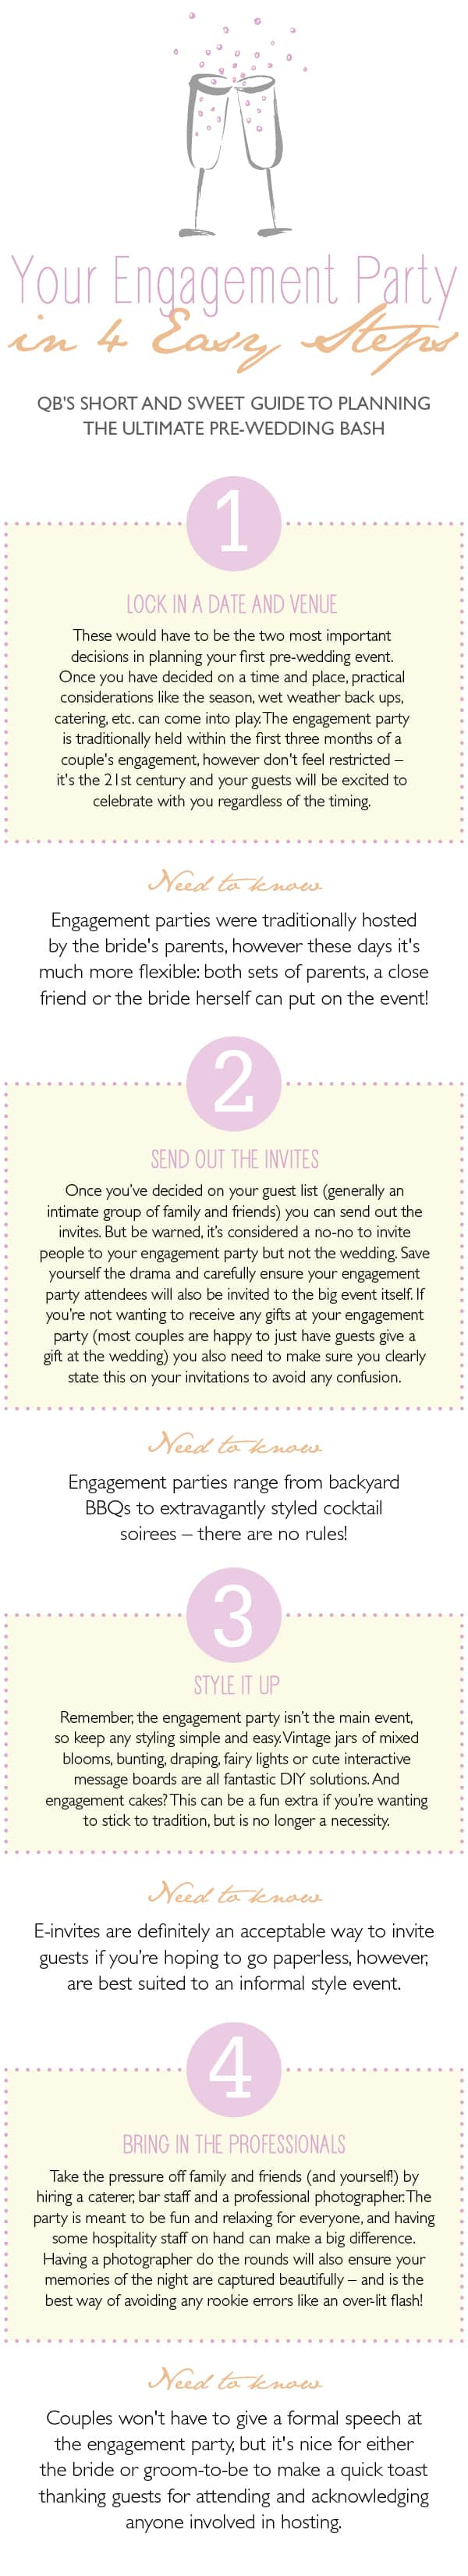 4 easy steps to the perfect engagement party